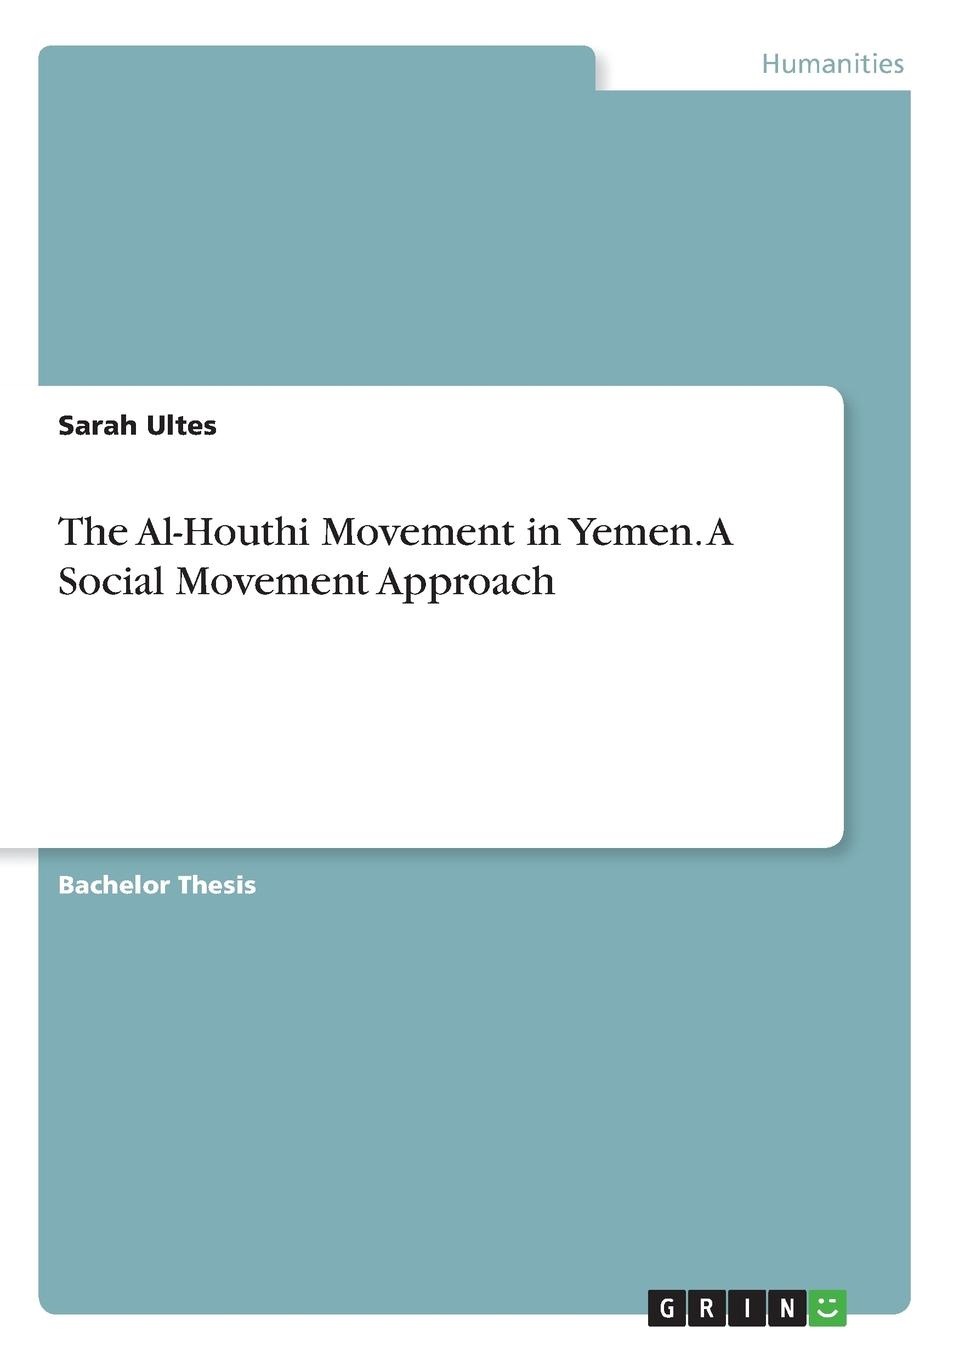 Sarah Ultes The Al-Houthi Movement in Yemen. A Social Movement Approach